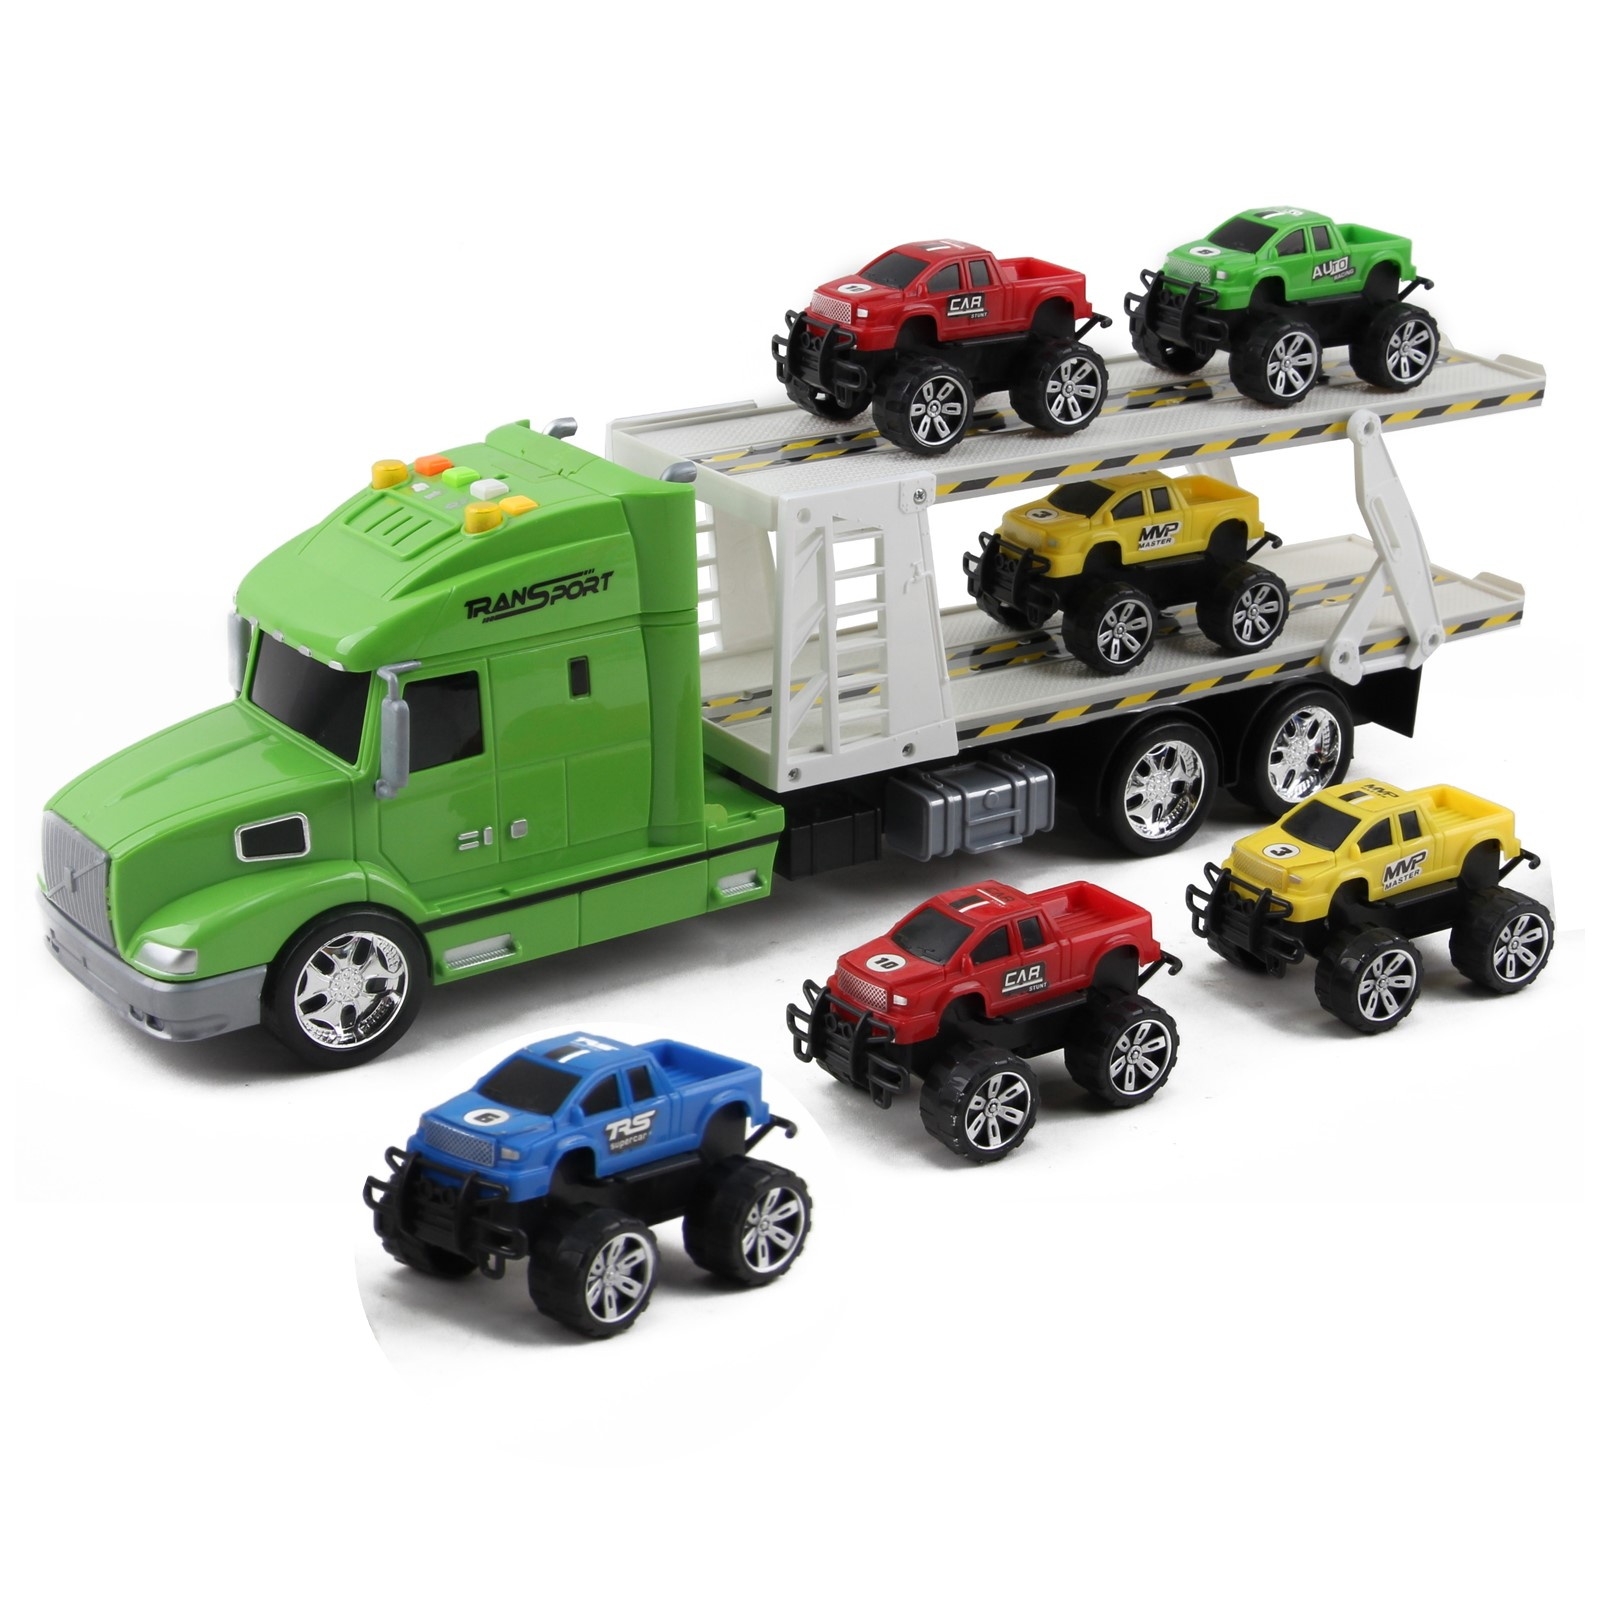 Friction Powered Toy Semi Truck Trailer Kids Push And Go Big Rig Carrier Includes Six Pickup Cars 1:20 Scale Auto Transporter Vehicle Perfect Pretend Play Imagination Gift For Children